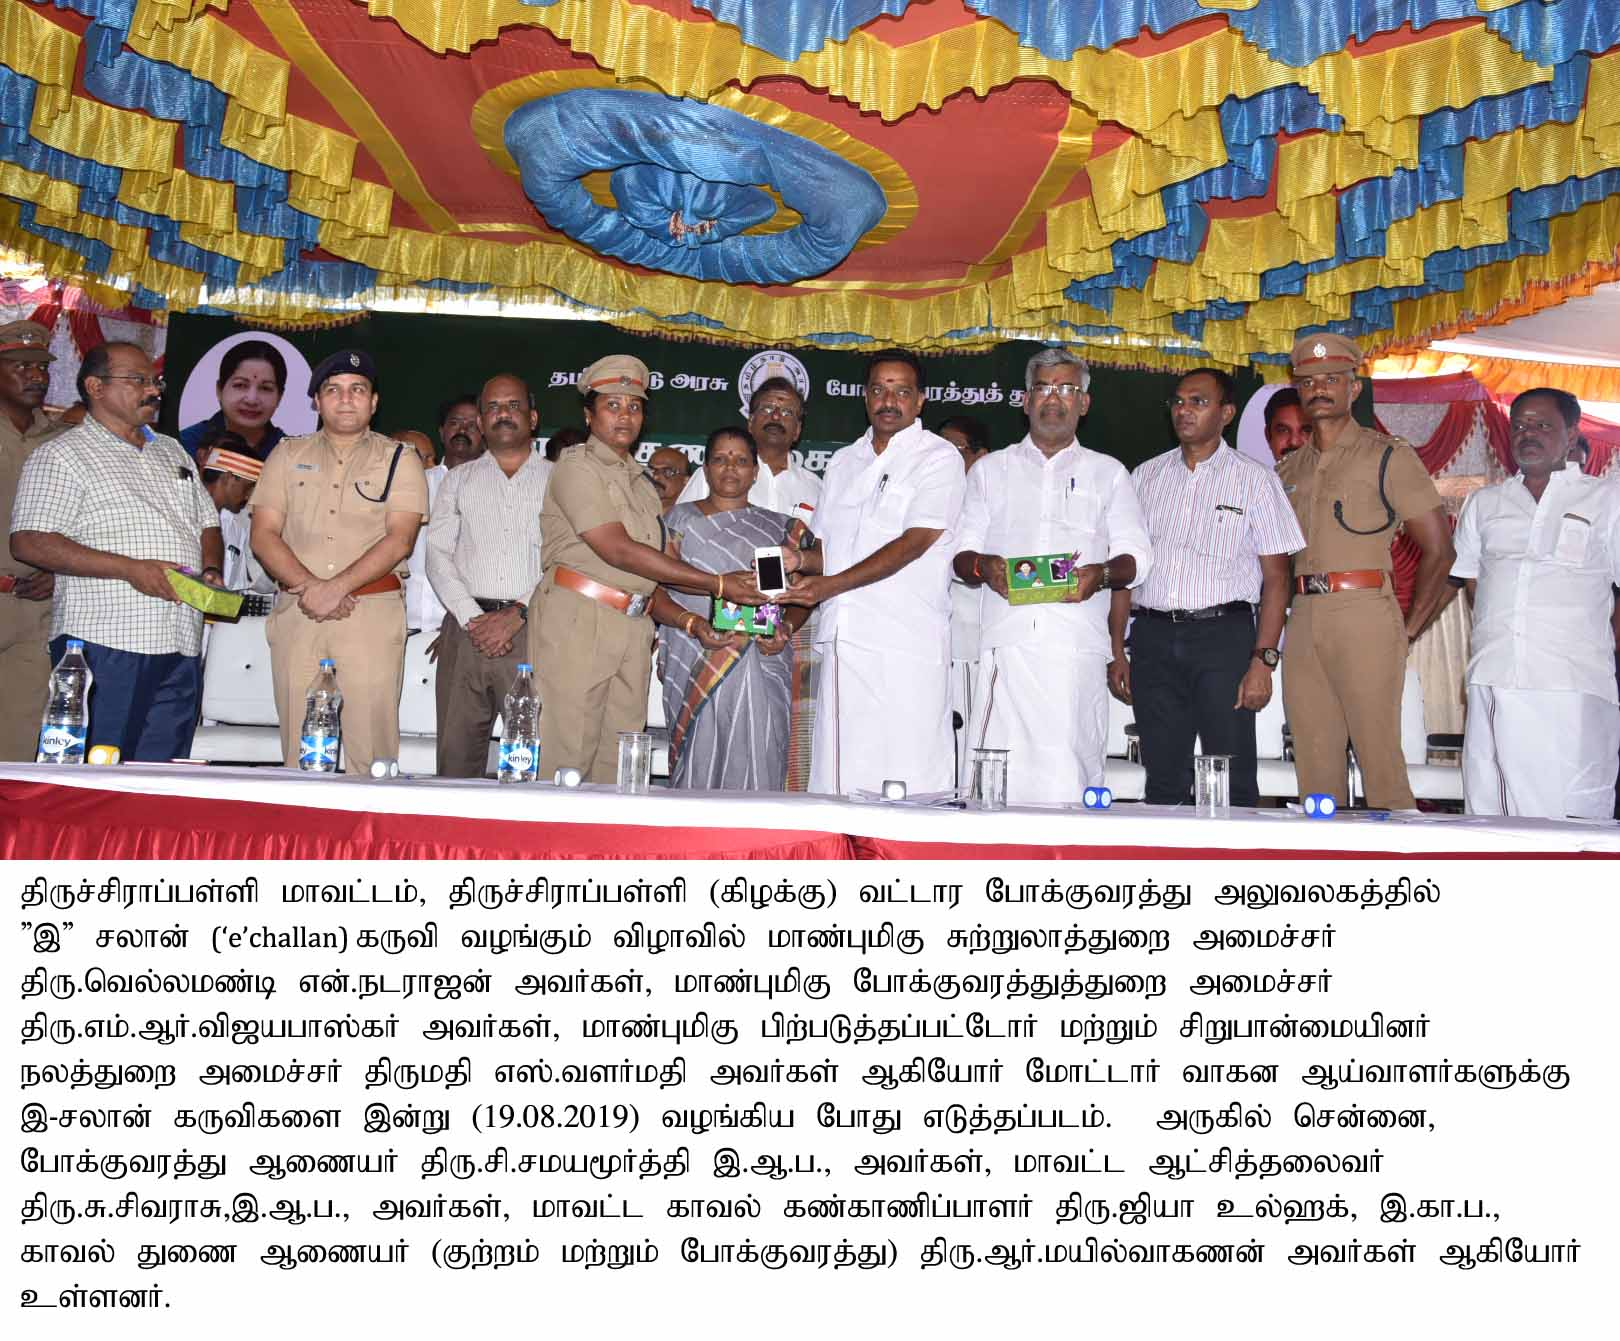 Inauguration of eChallan at Trichy East RTO Office